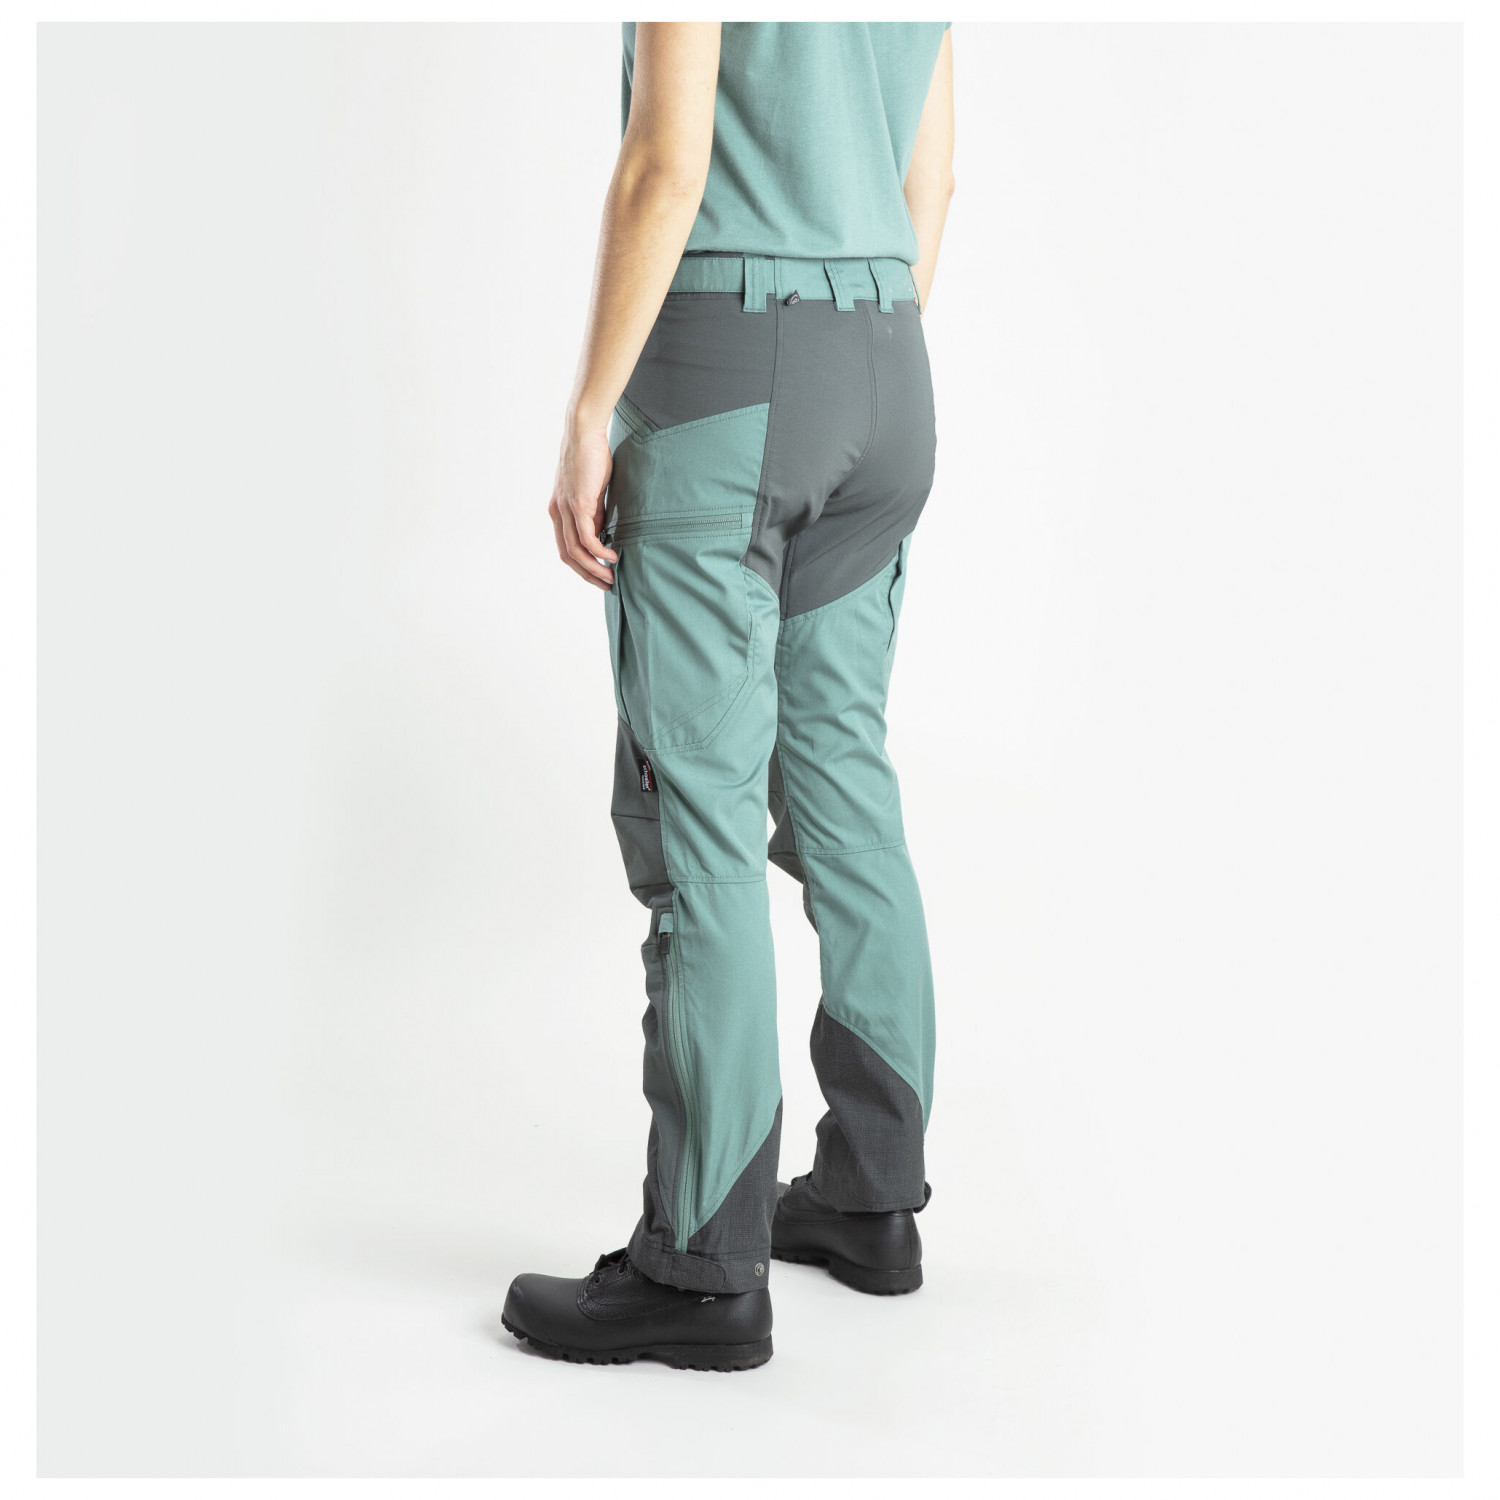 7fce79a6 Lundhags Makke Pant - Softshell trousers Women's | Free EU Delivery ...